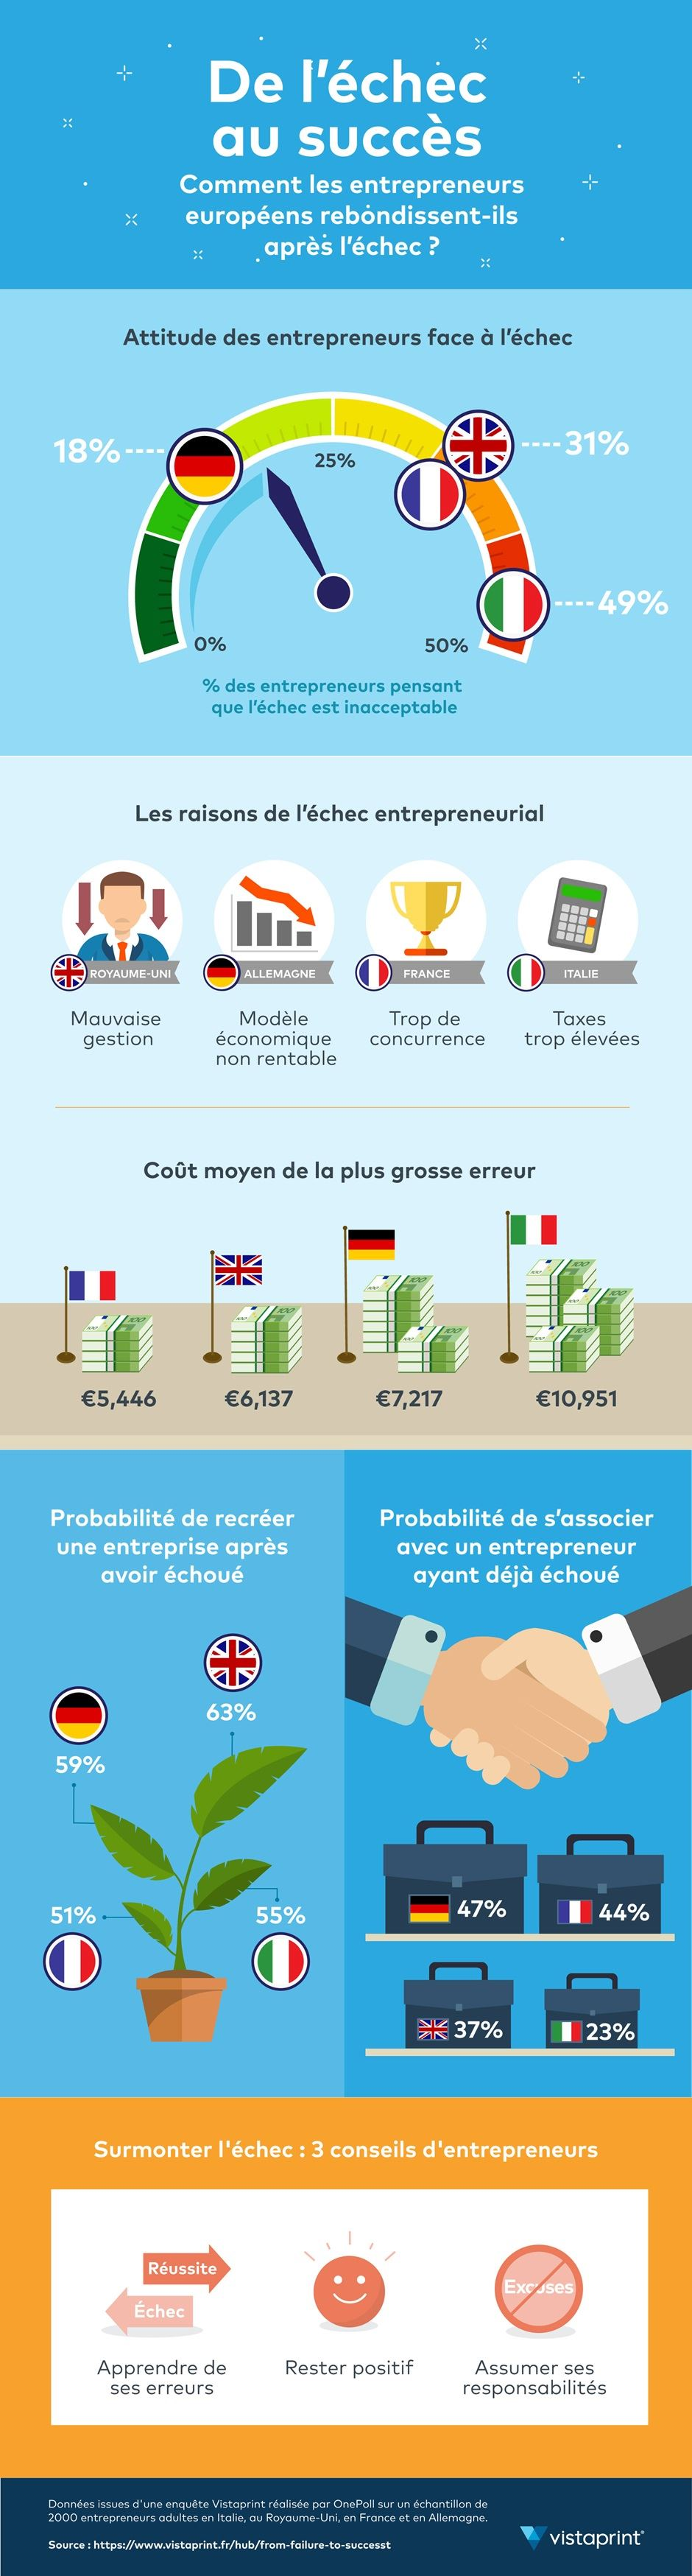 infographie echec erreur tabou europe